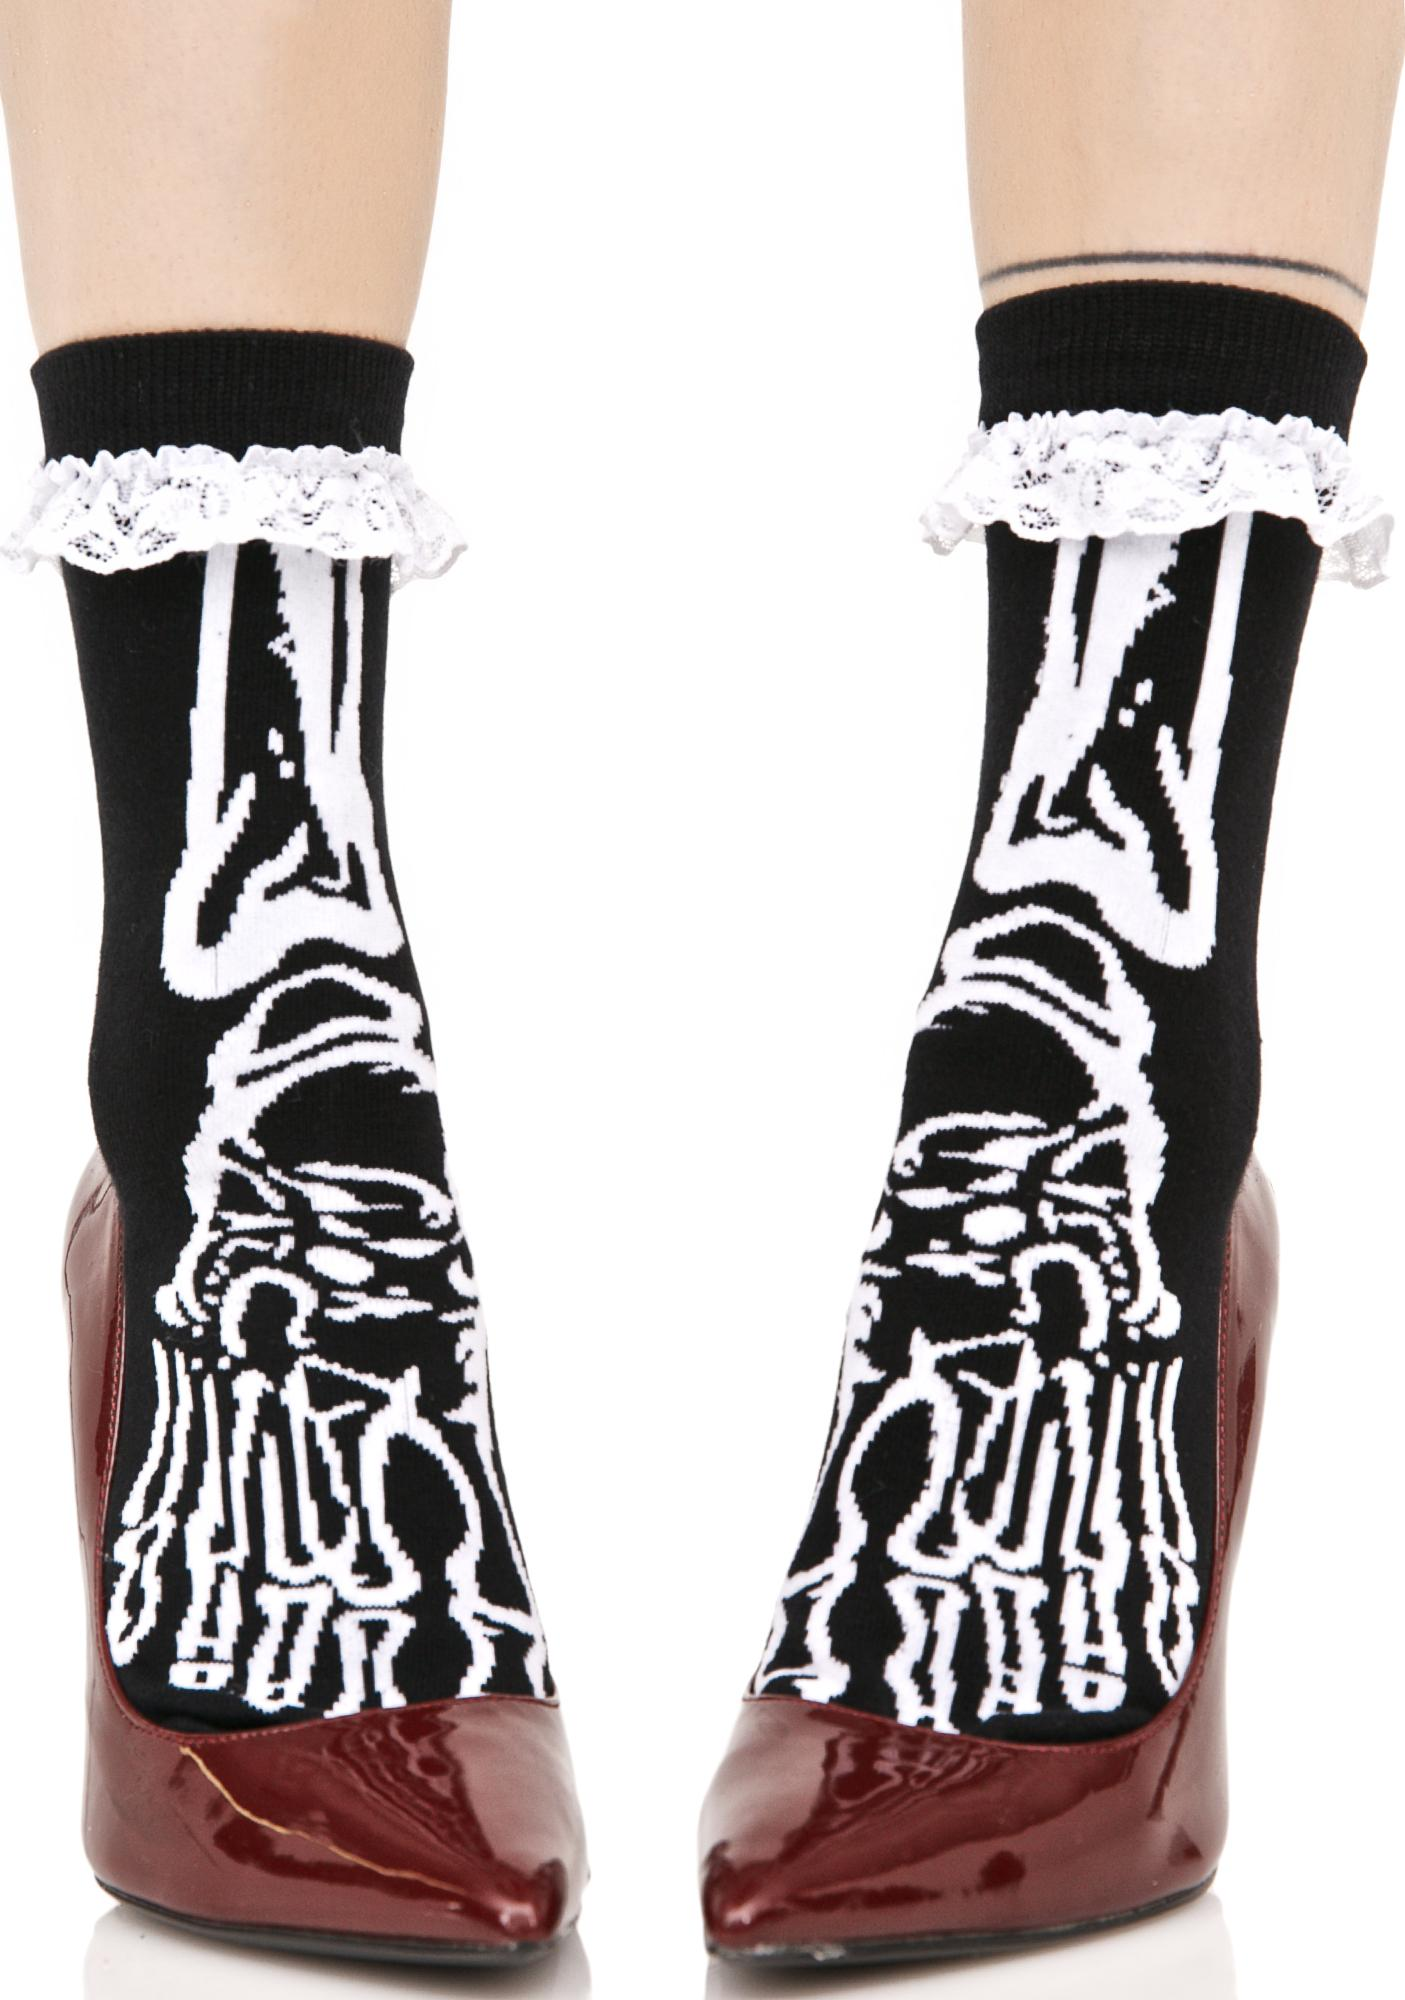 Killstar Morgue Ankle Socks